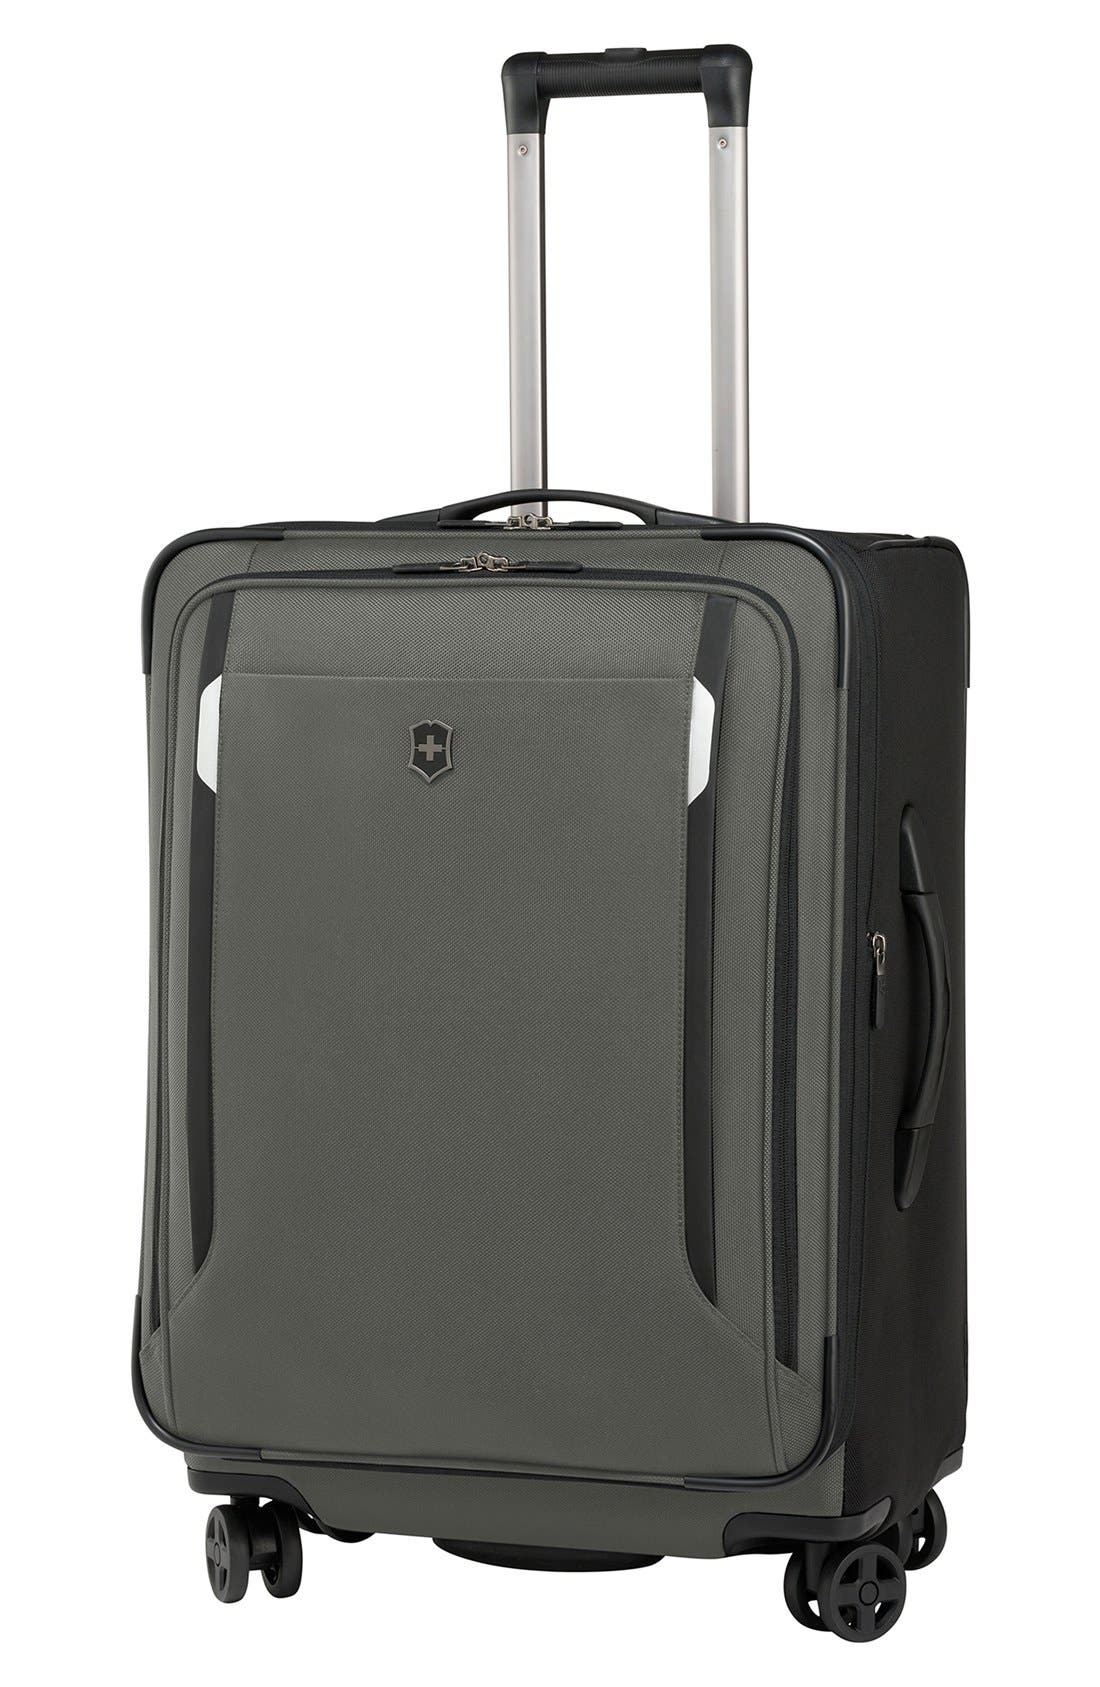 WT 5.0 Dual Caster Wheeled 24-Inch Packing Case,                             Main thumbnail 1, color,                             399